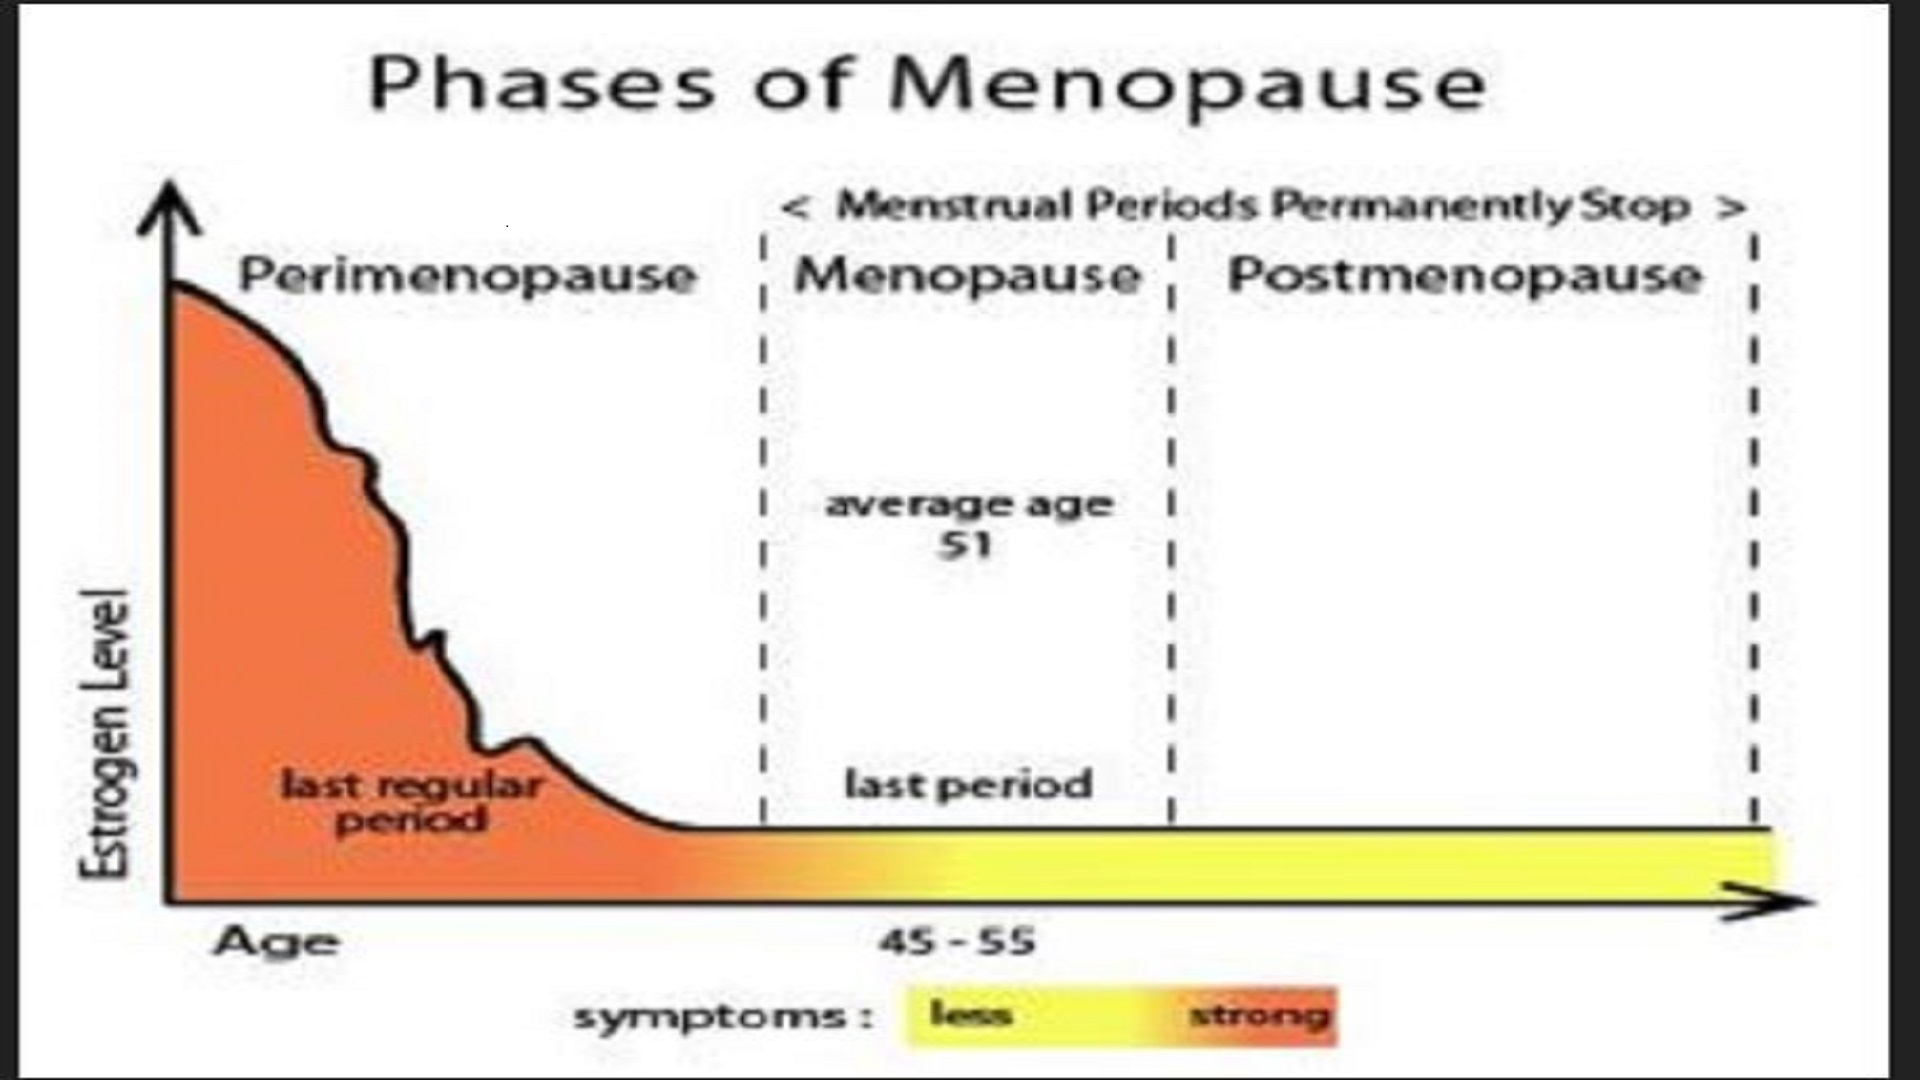 Epidemiological Profile of Menopausal Symptoms among Women Aged 40-60 Years in Chennai-A Cross Sectional Study